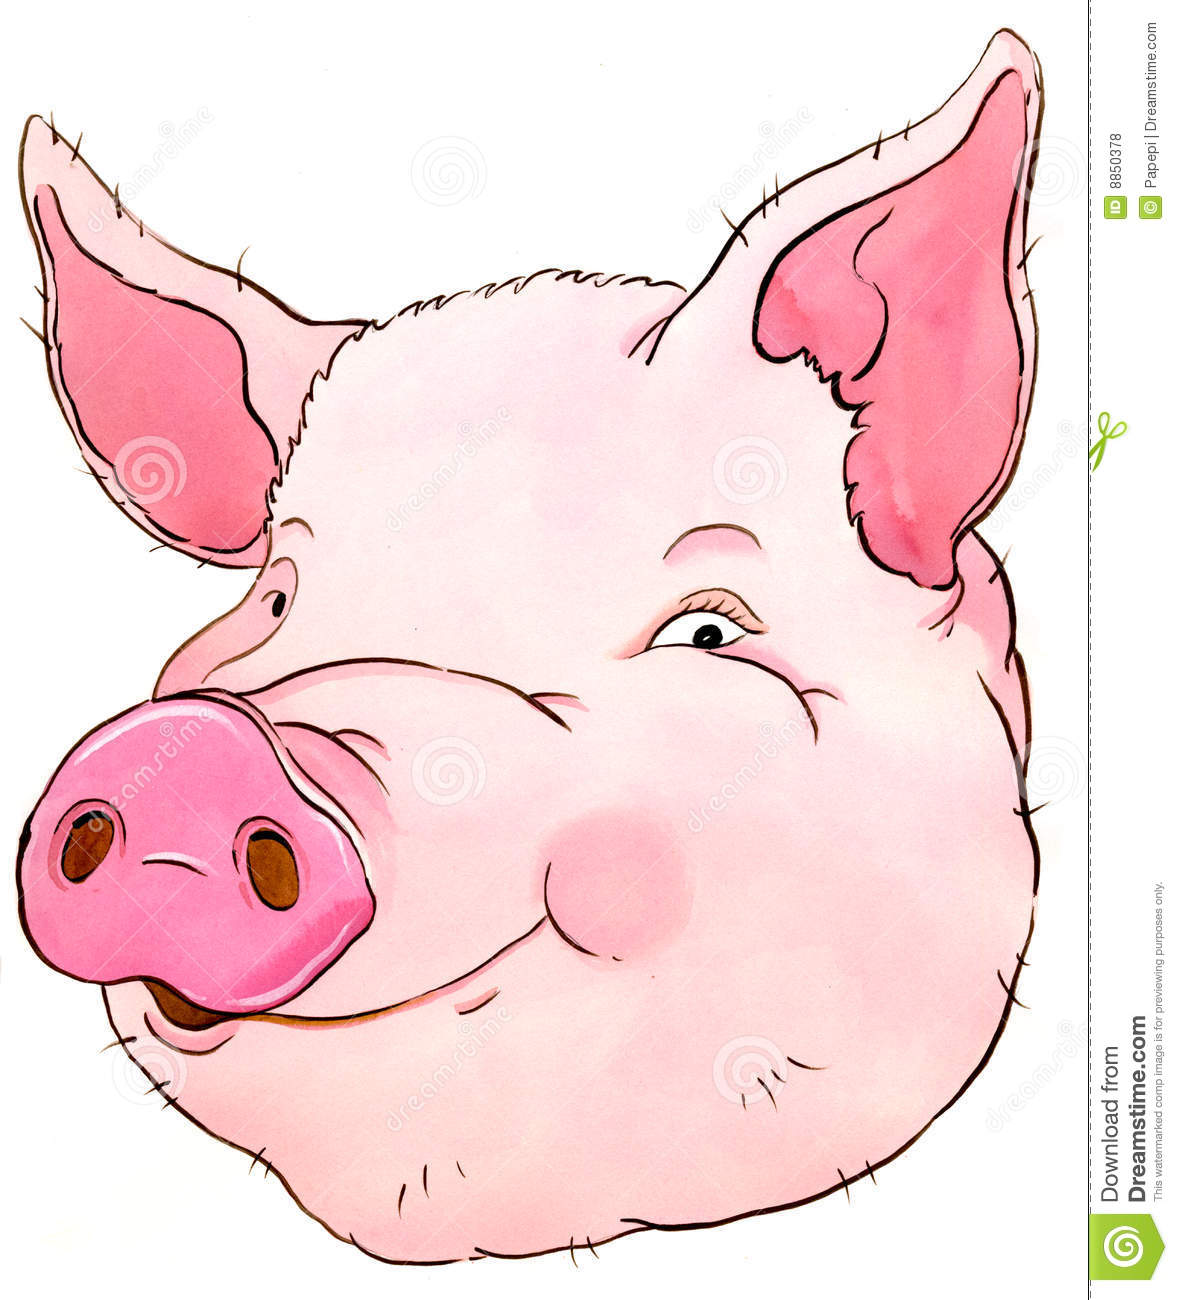 Pig Royalty Free Stock Photos Image 8850378